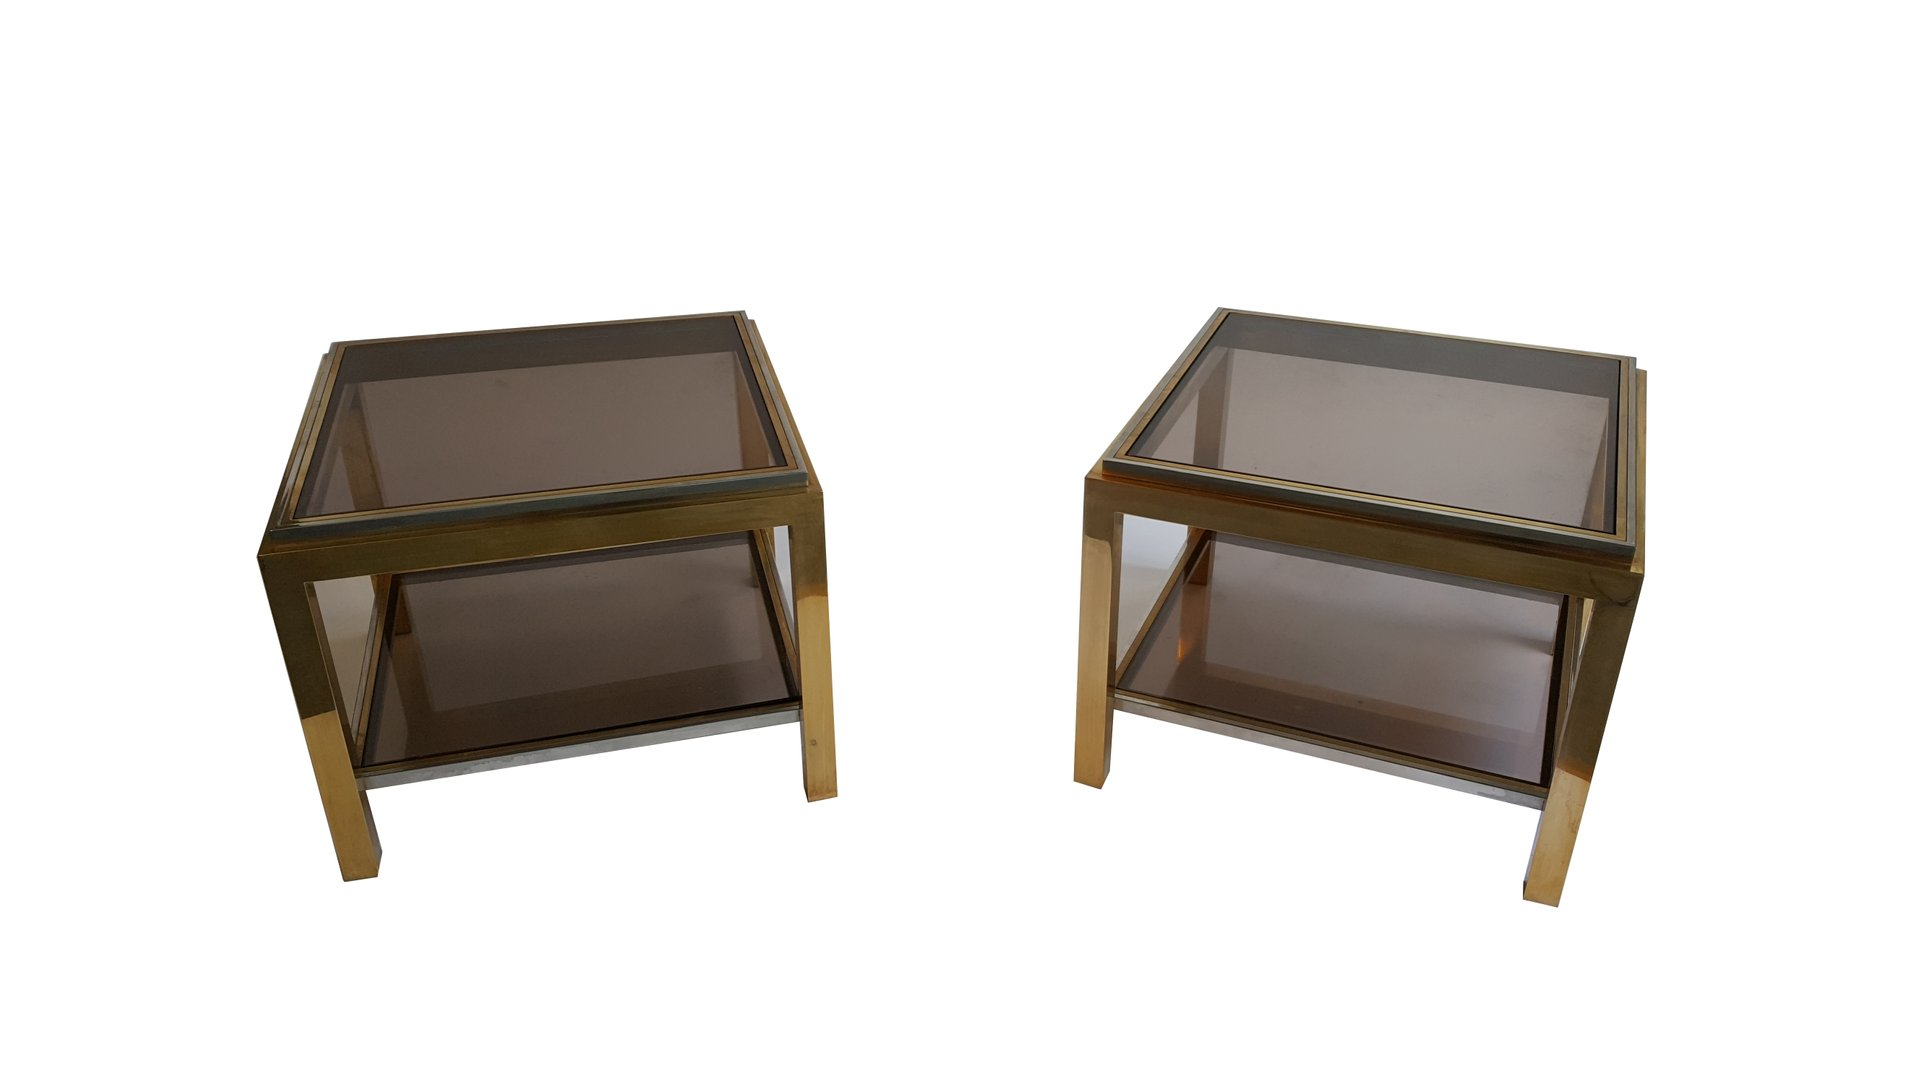 Brass And Smoked Glass Coffee Tables By Jean Charles Set Of 2